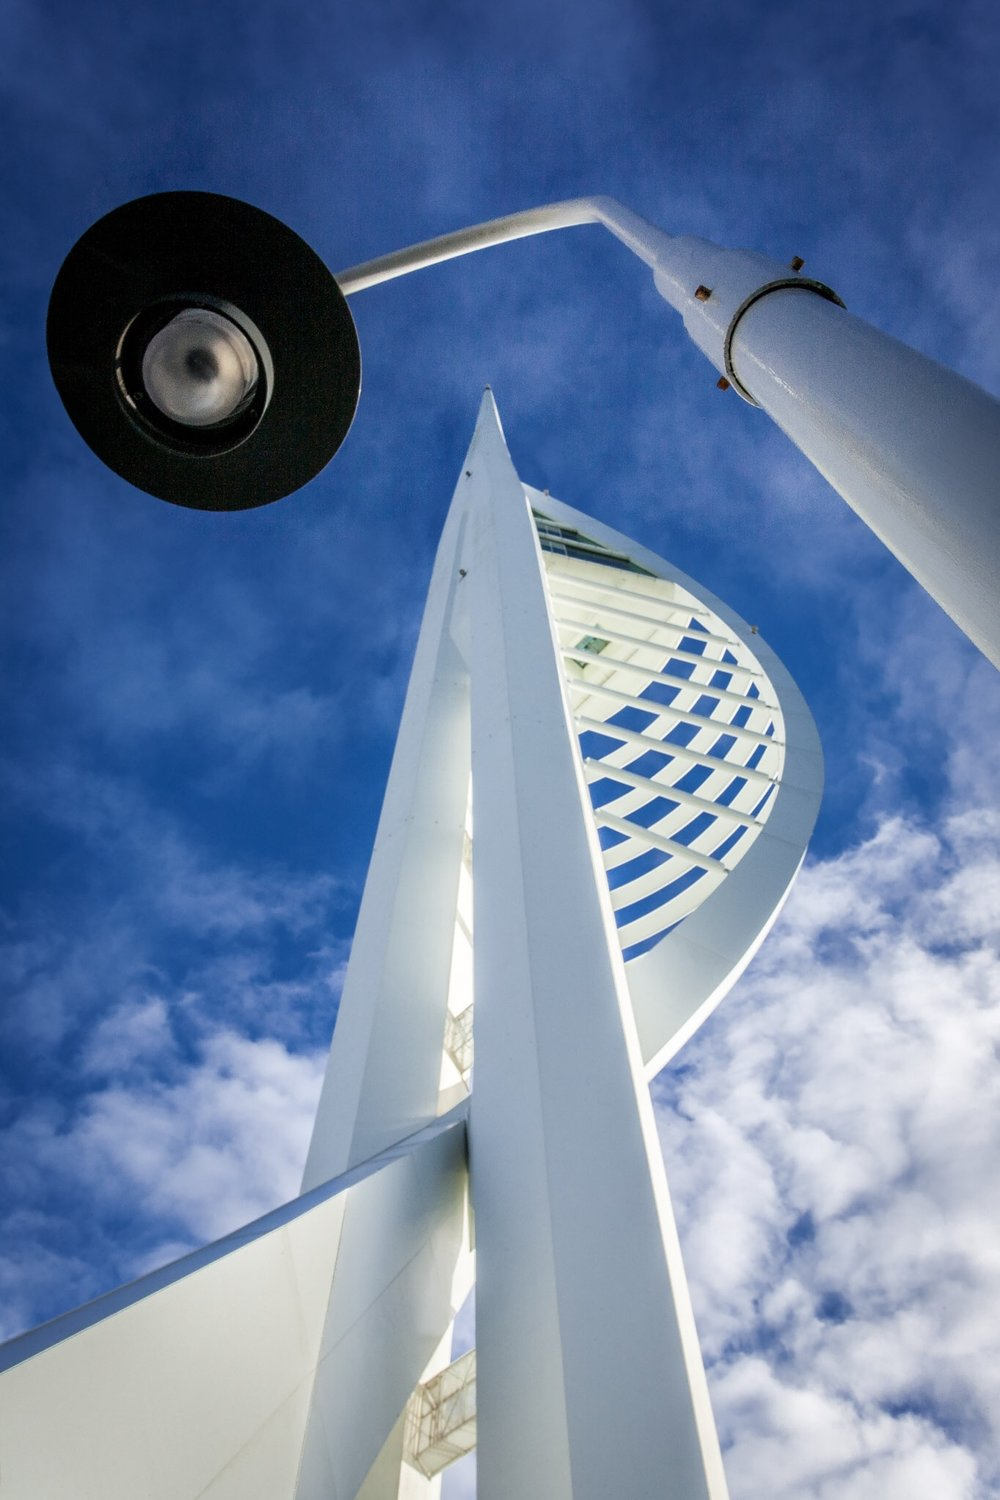 A different view of the Spinnaker Tower in Portsmouth - personal architecture photography work in Hampshire